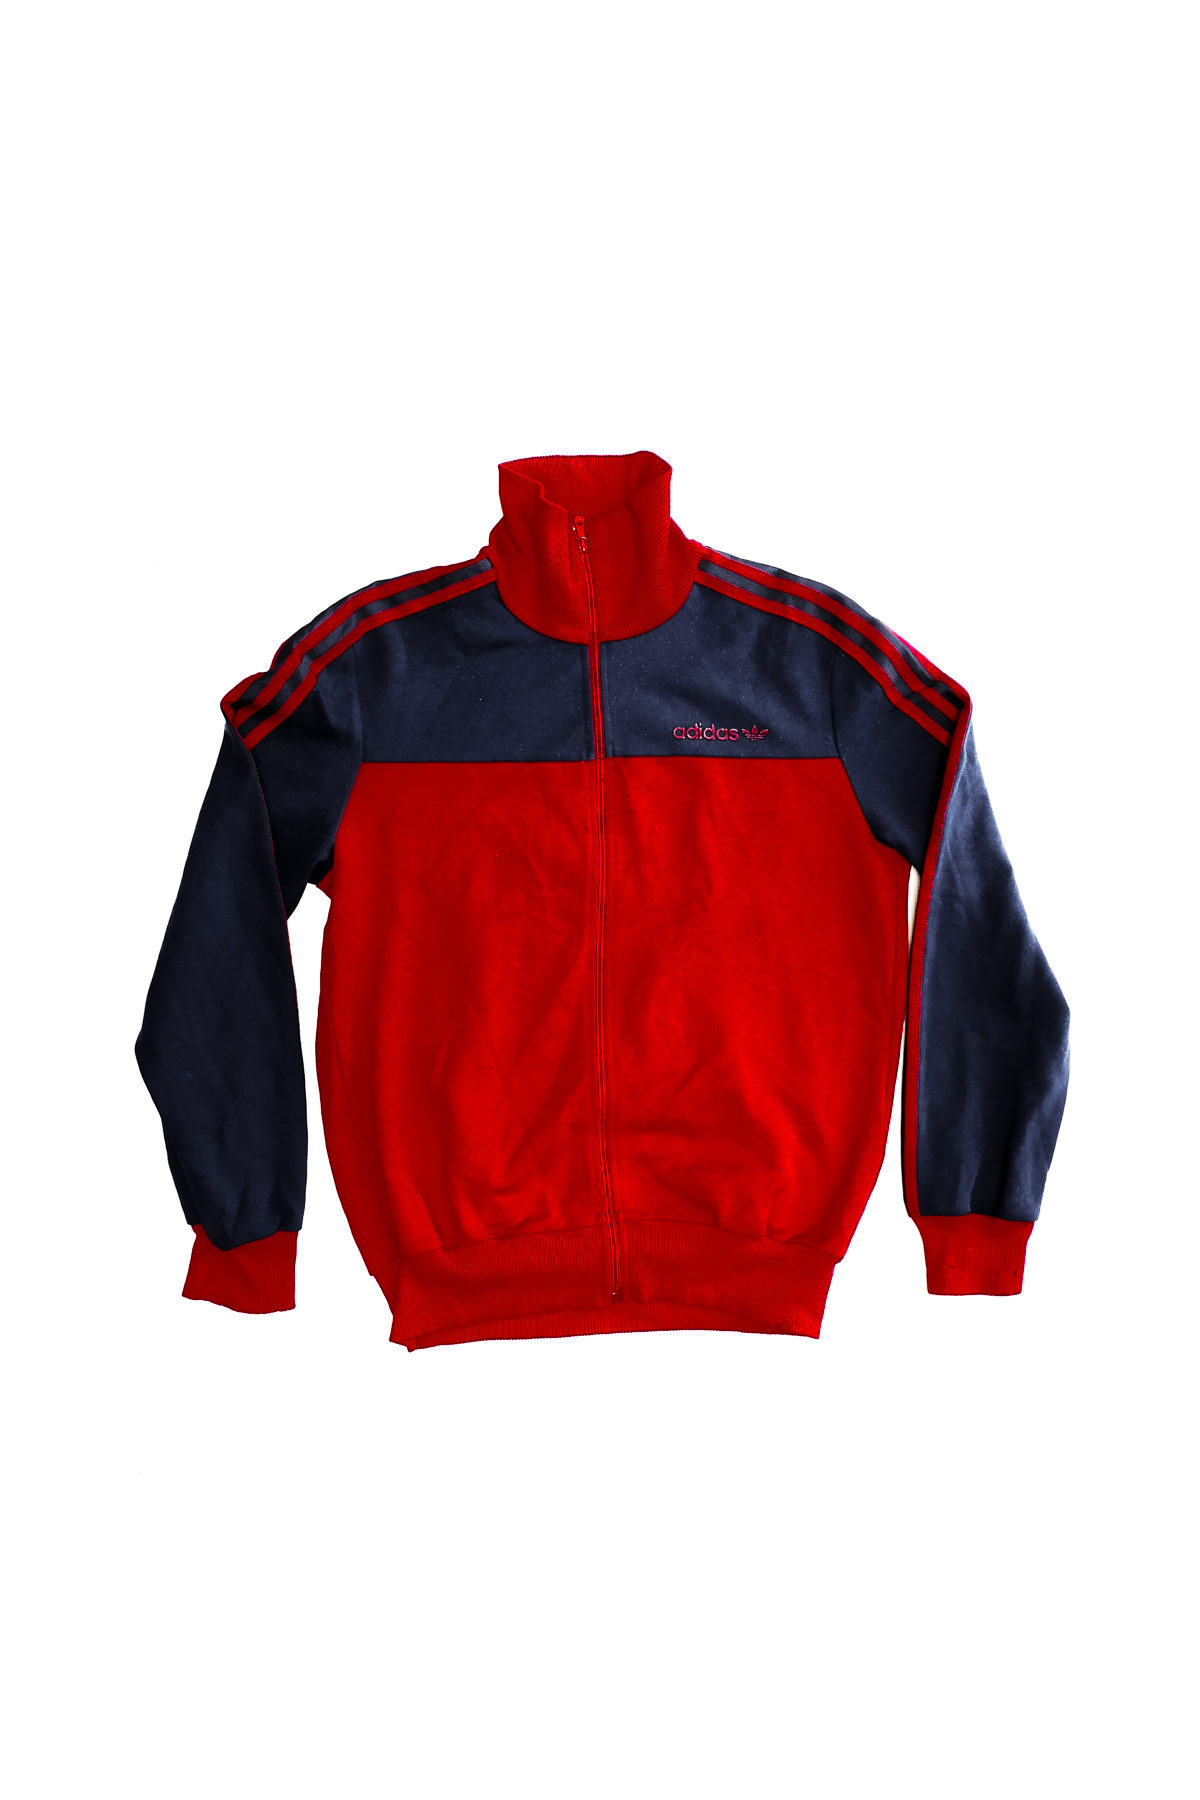 Adidas FELPA VINTAGE Red Blue